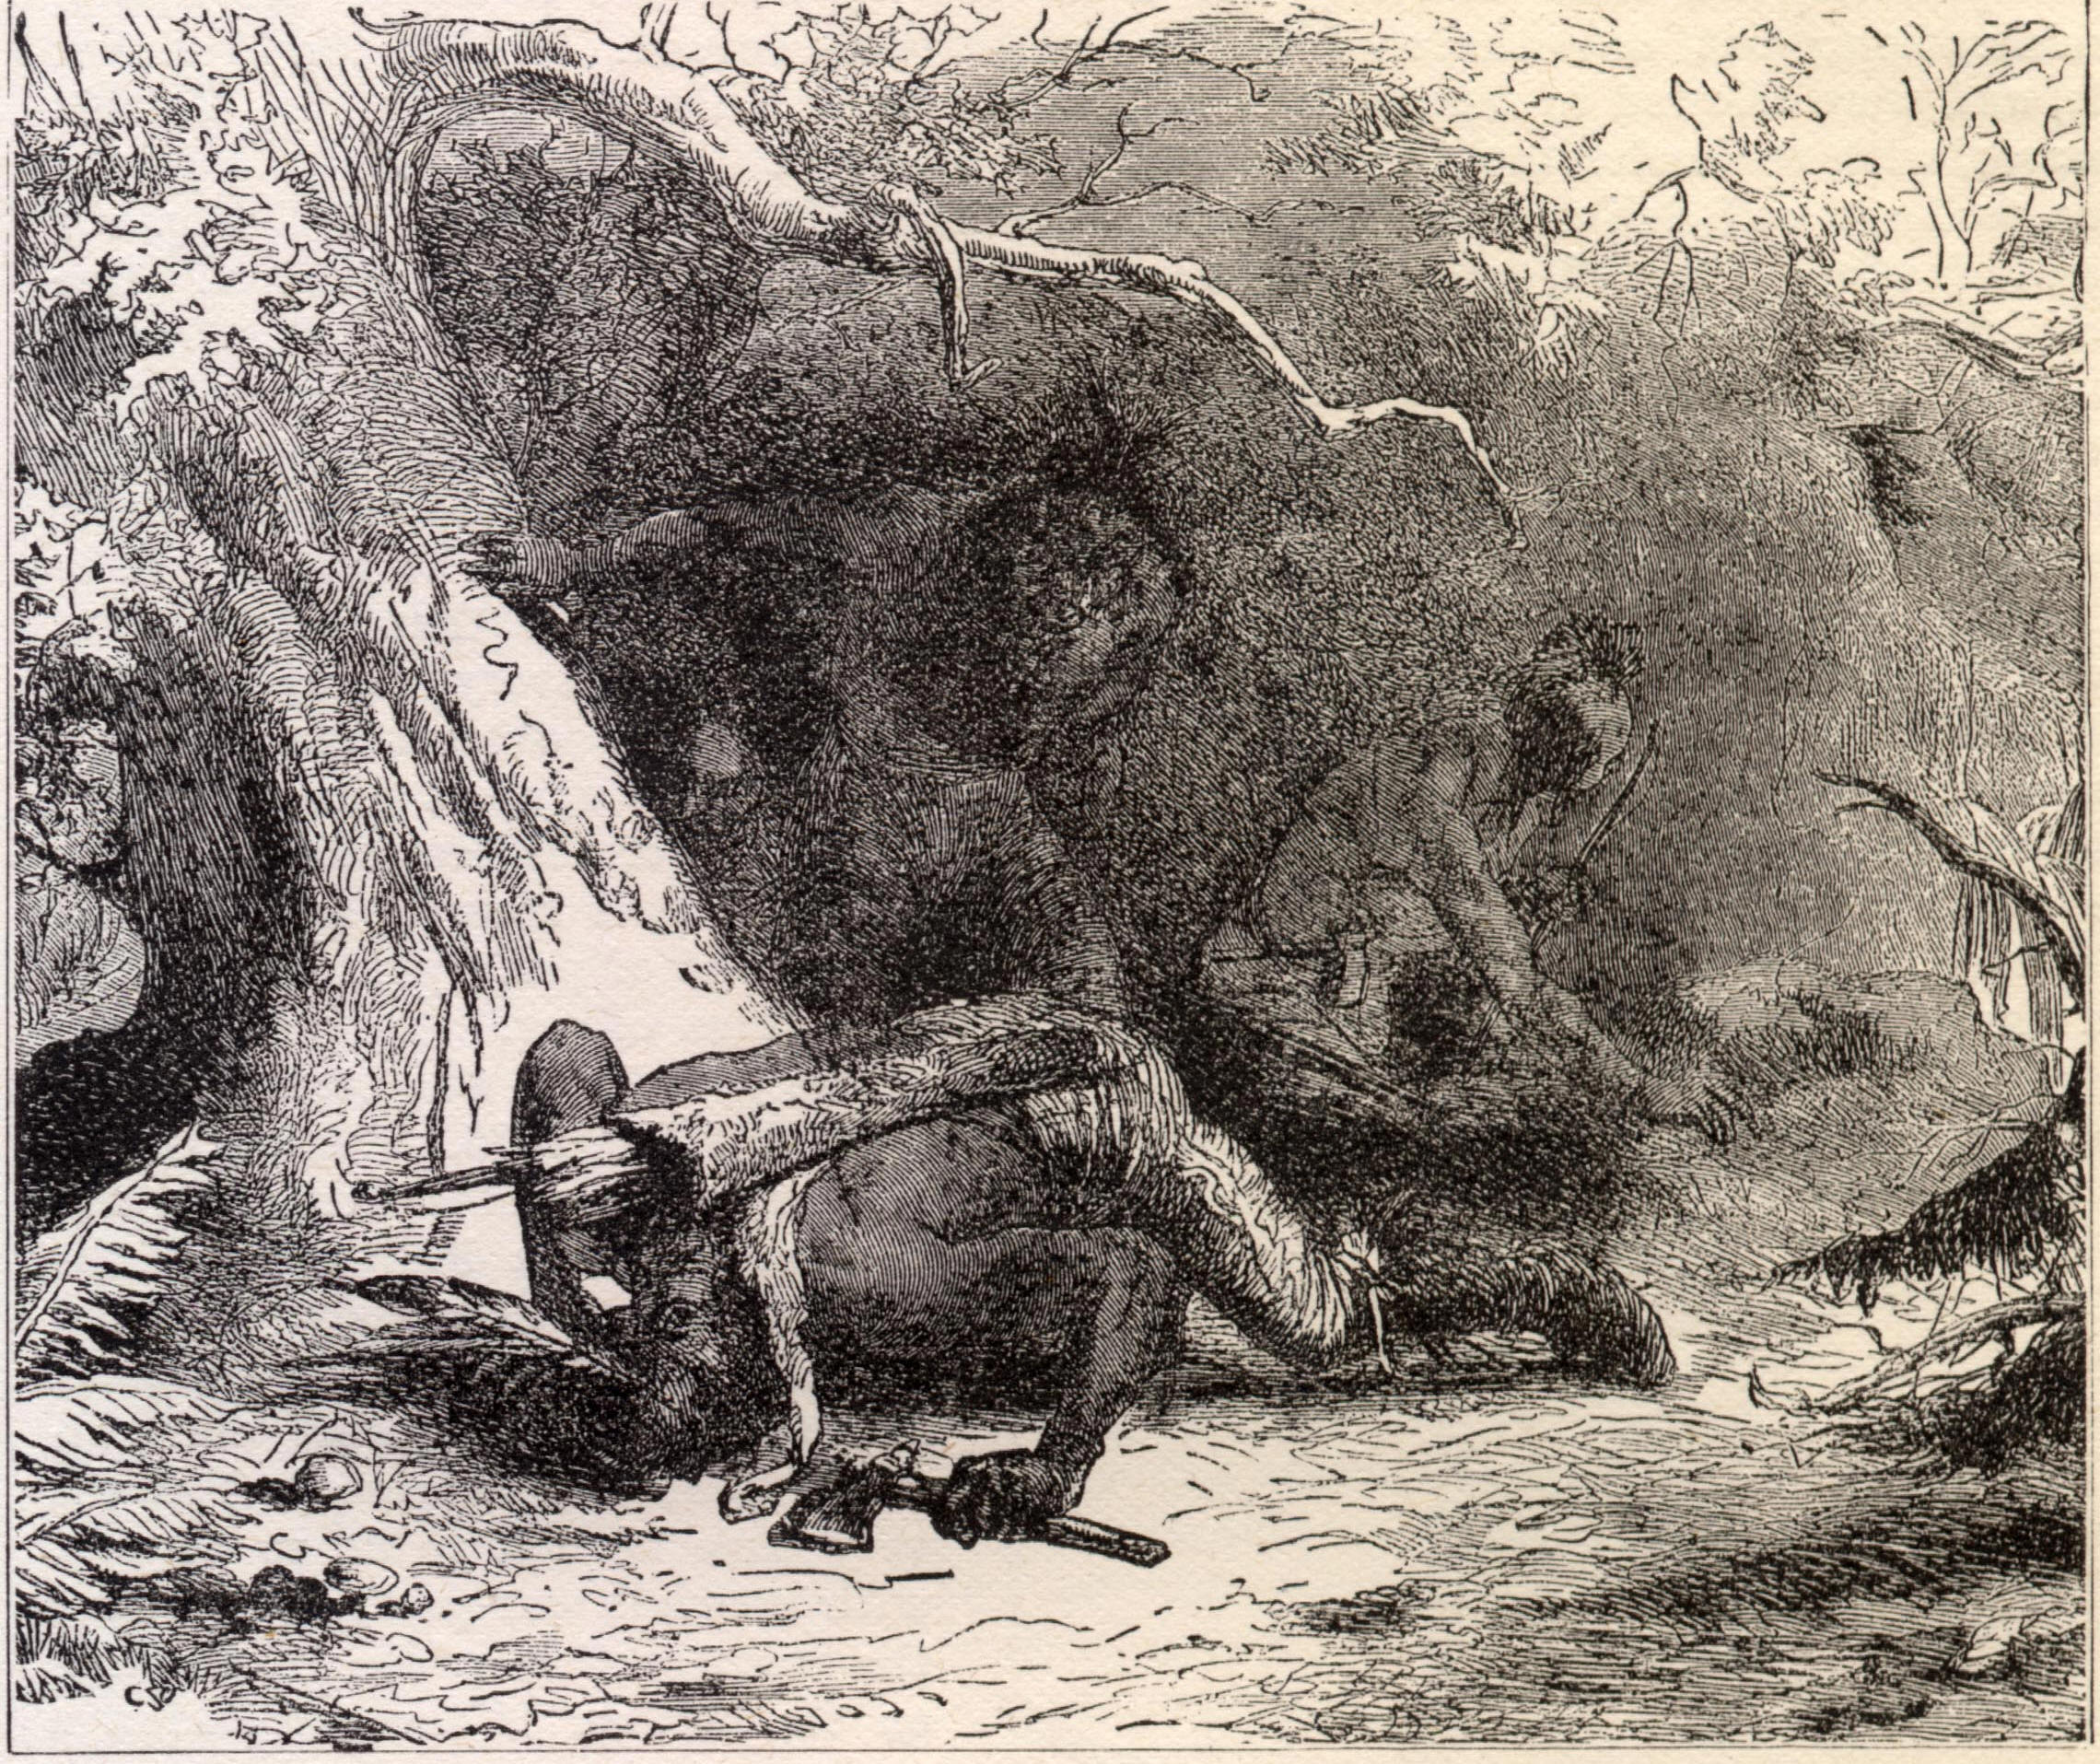 indian wars Get an answer for 'what were the causes and effects of the indian wars between 1860 and 1890' and find homework help for other history questions at enotes.